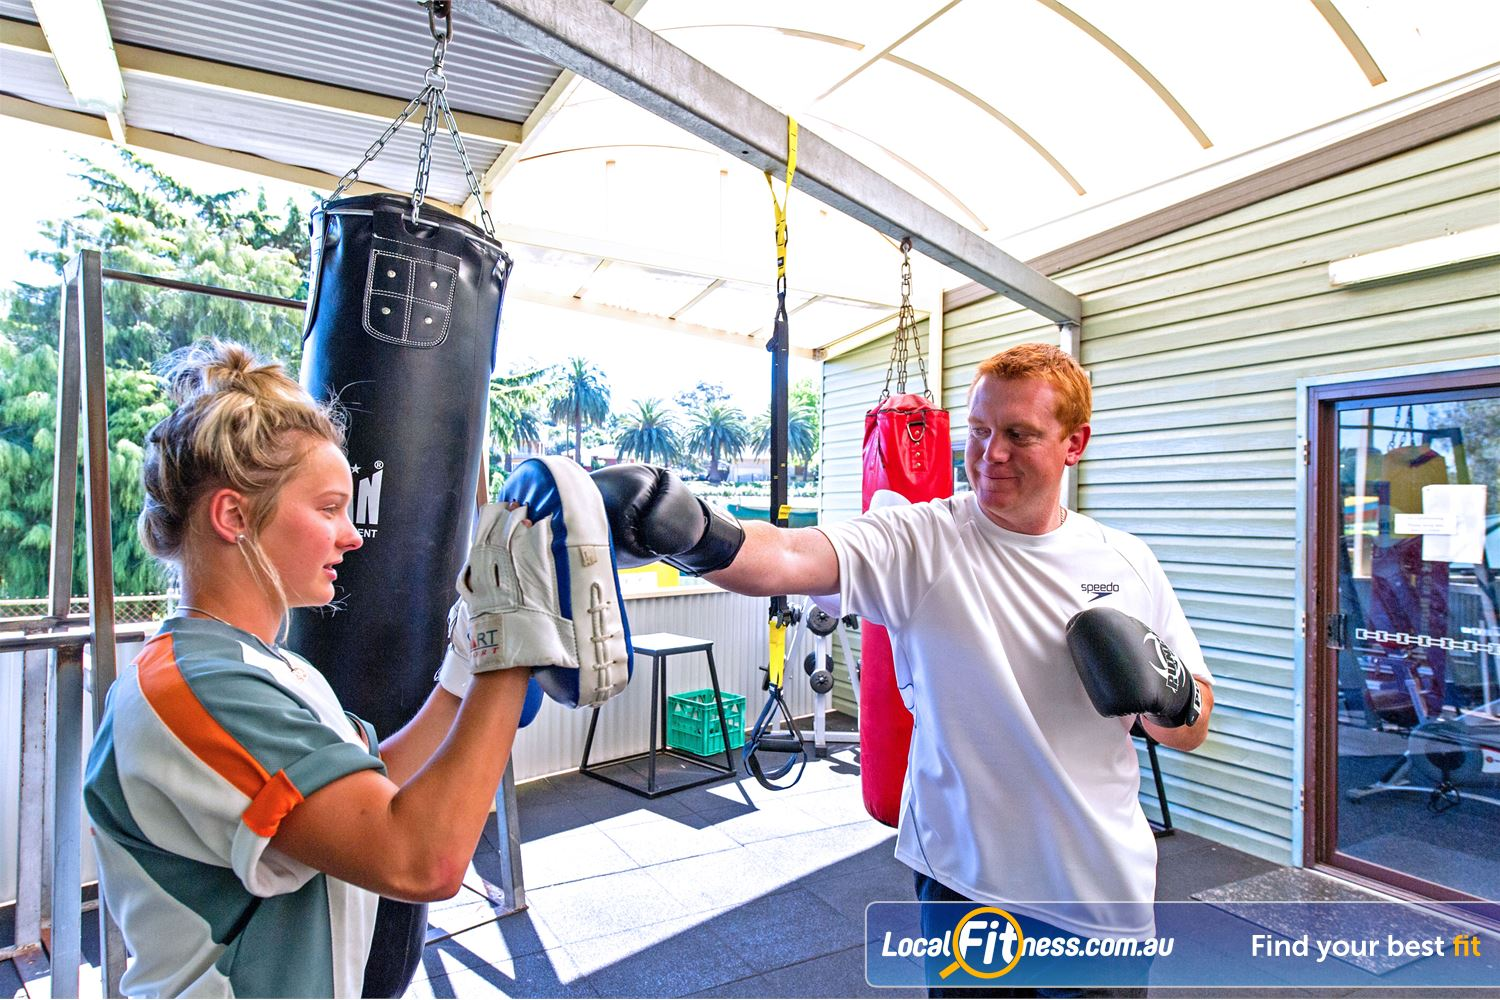 Waves Fitness and Aquatic Centre Near Winston Hills Baulkham Hills personal trainers can mix your training up with boxing.